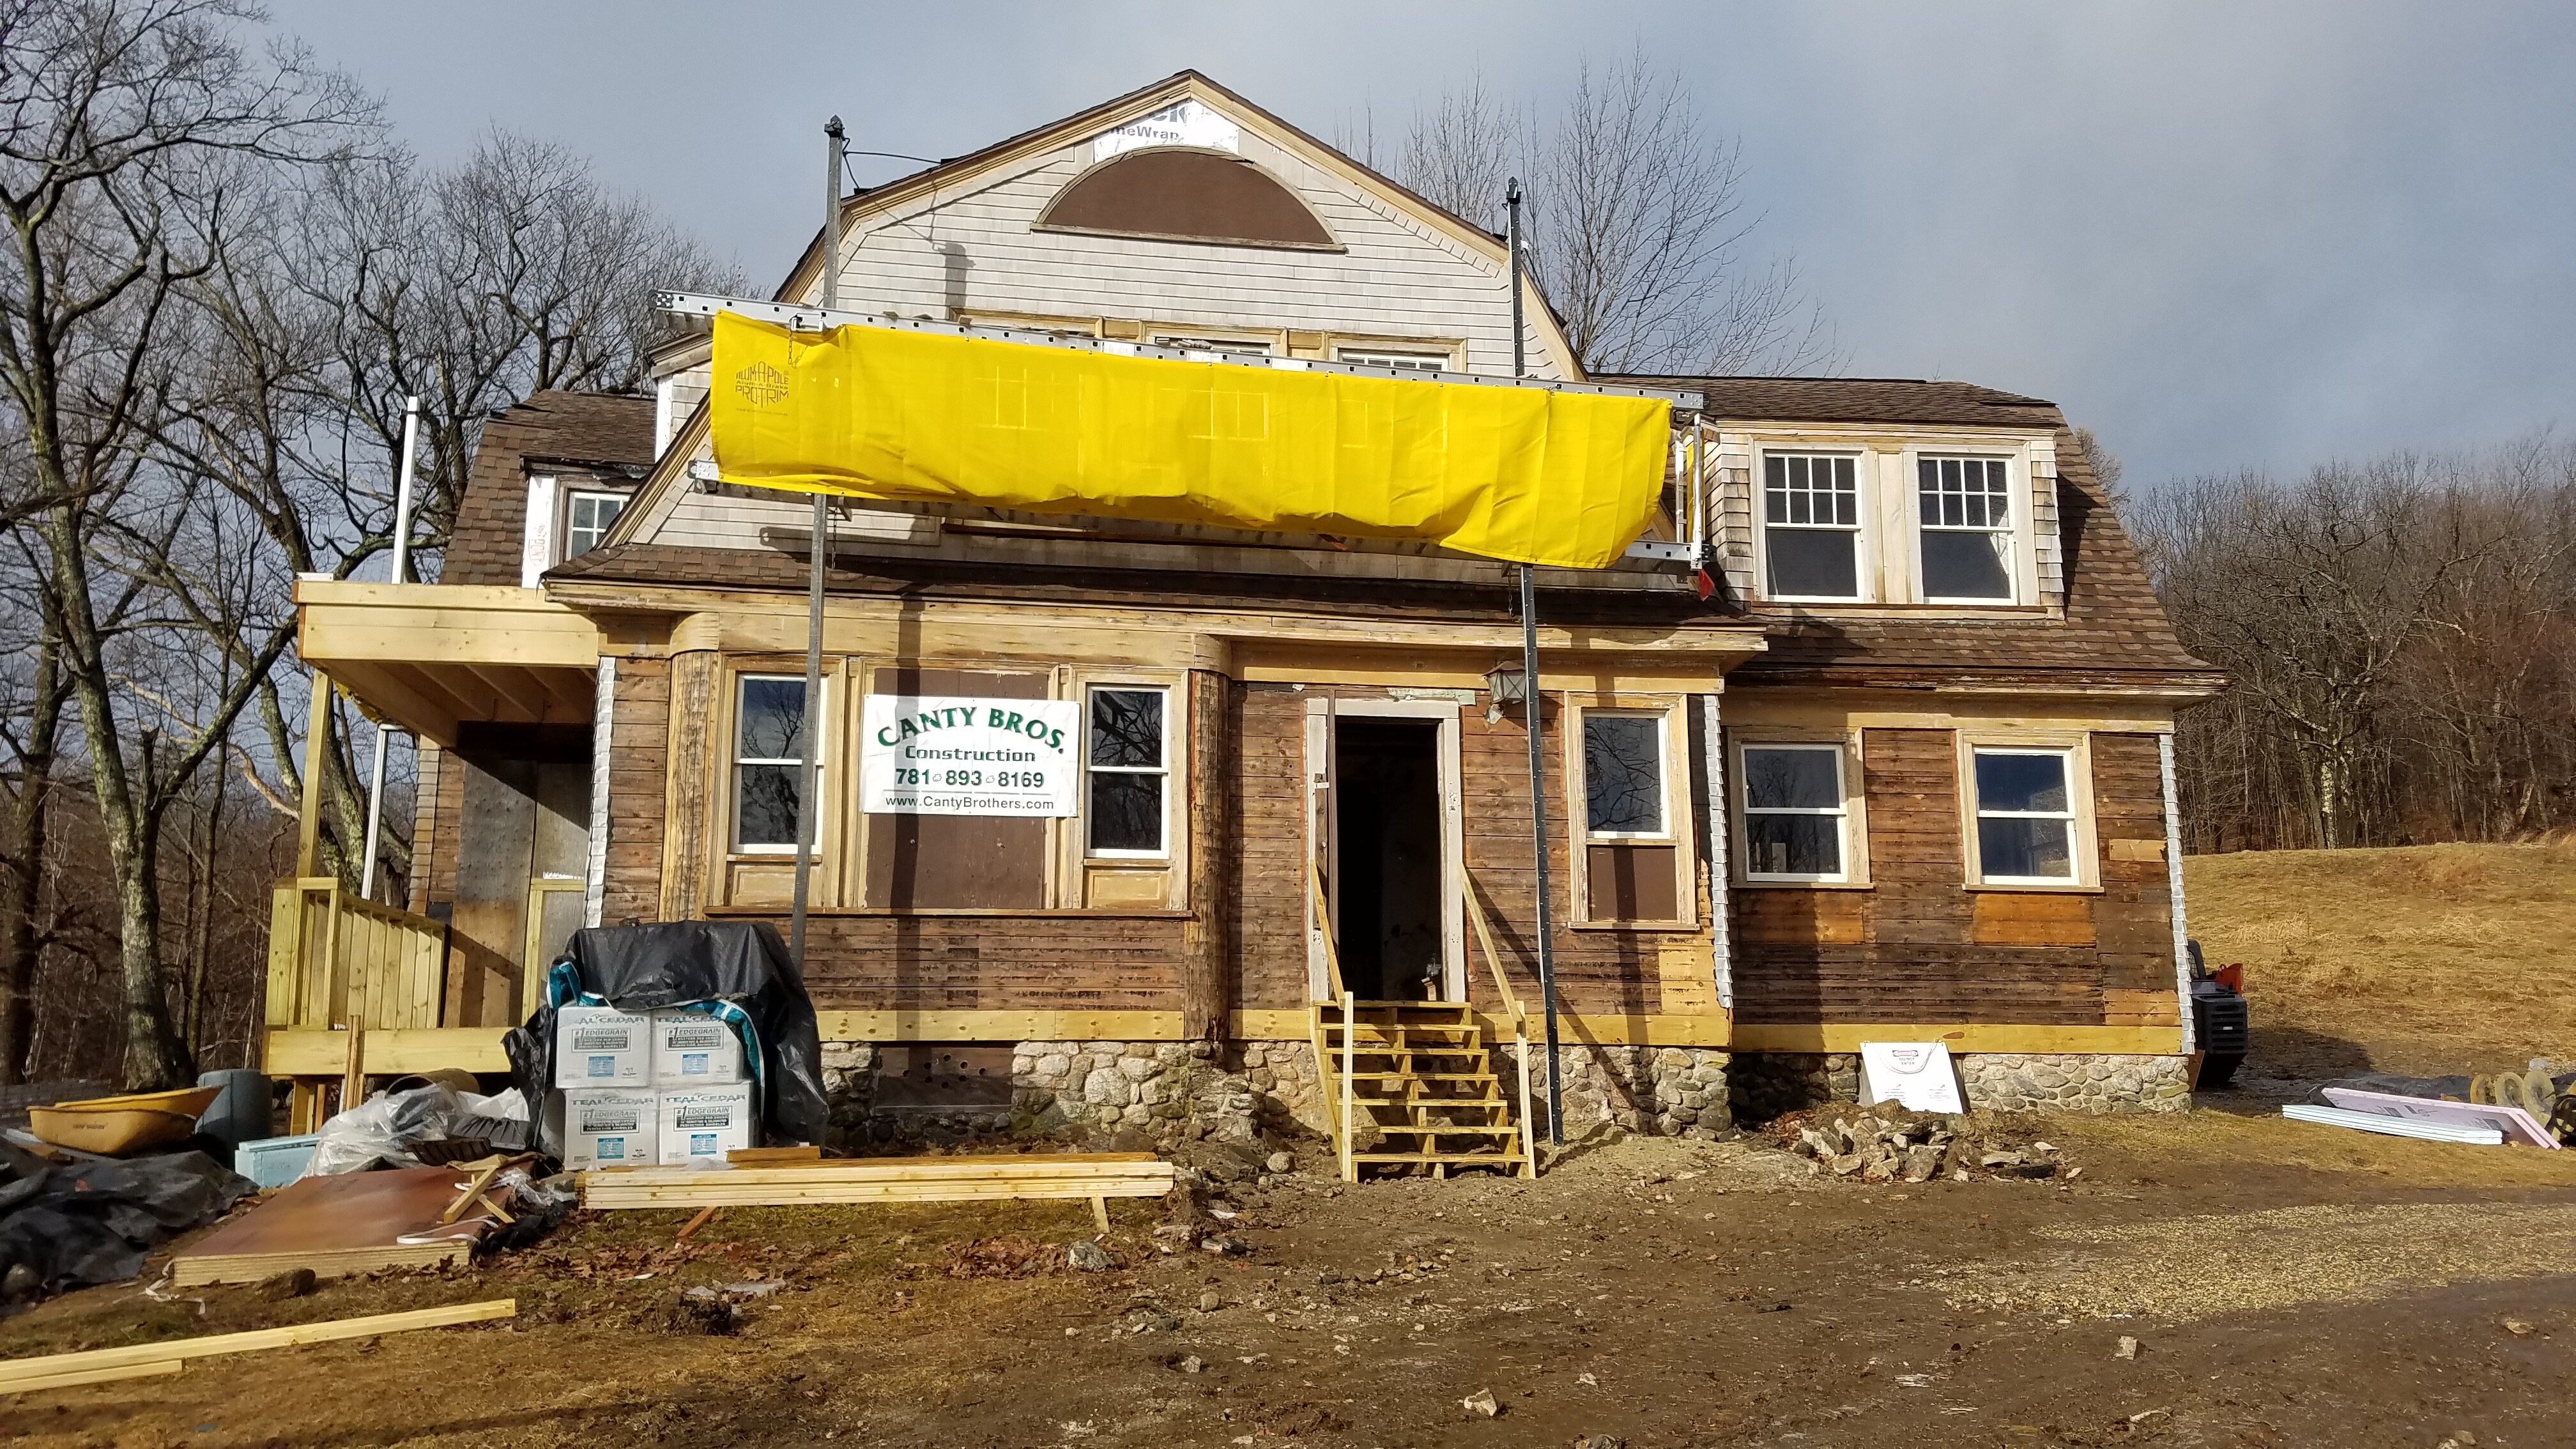 Superintendent's House at Mount Wachusett State Reservation and new home for Mountainside Marke Canty Brothers Construction